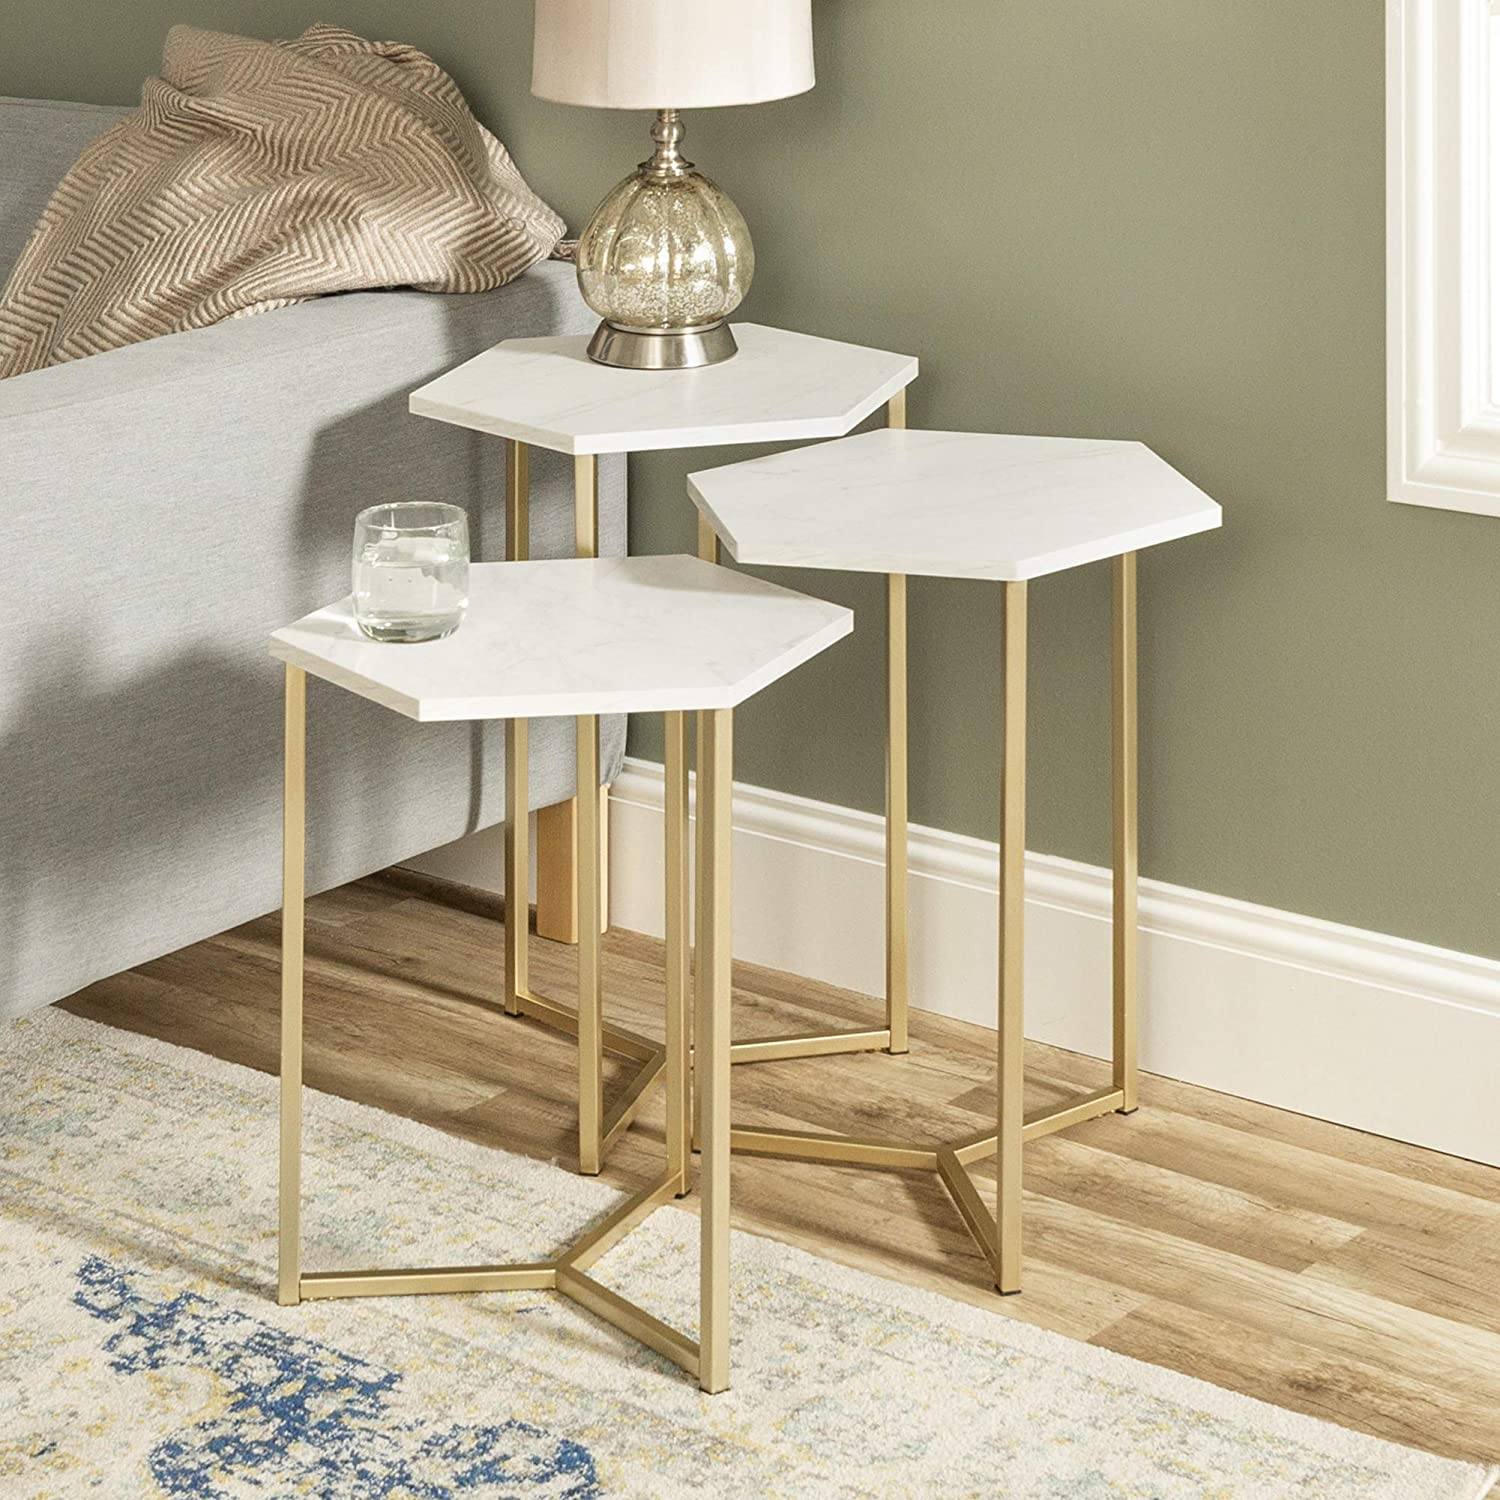 Amazon Com Walker Edison Modern Hexagon Nesting Side End Table Set Living Room Set Of 3 White Marble Gold Side Table Af16hex3wm Furniture Decor